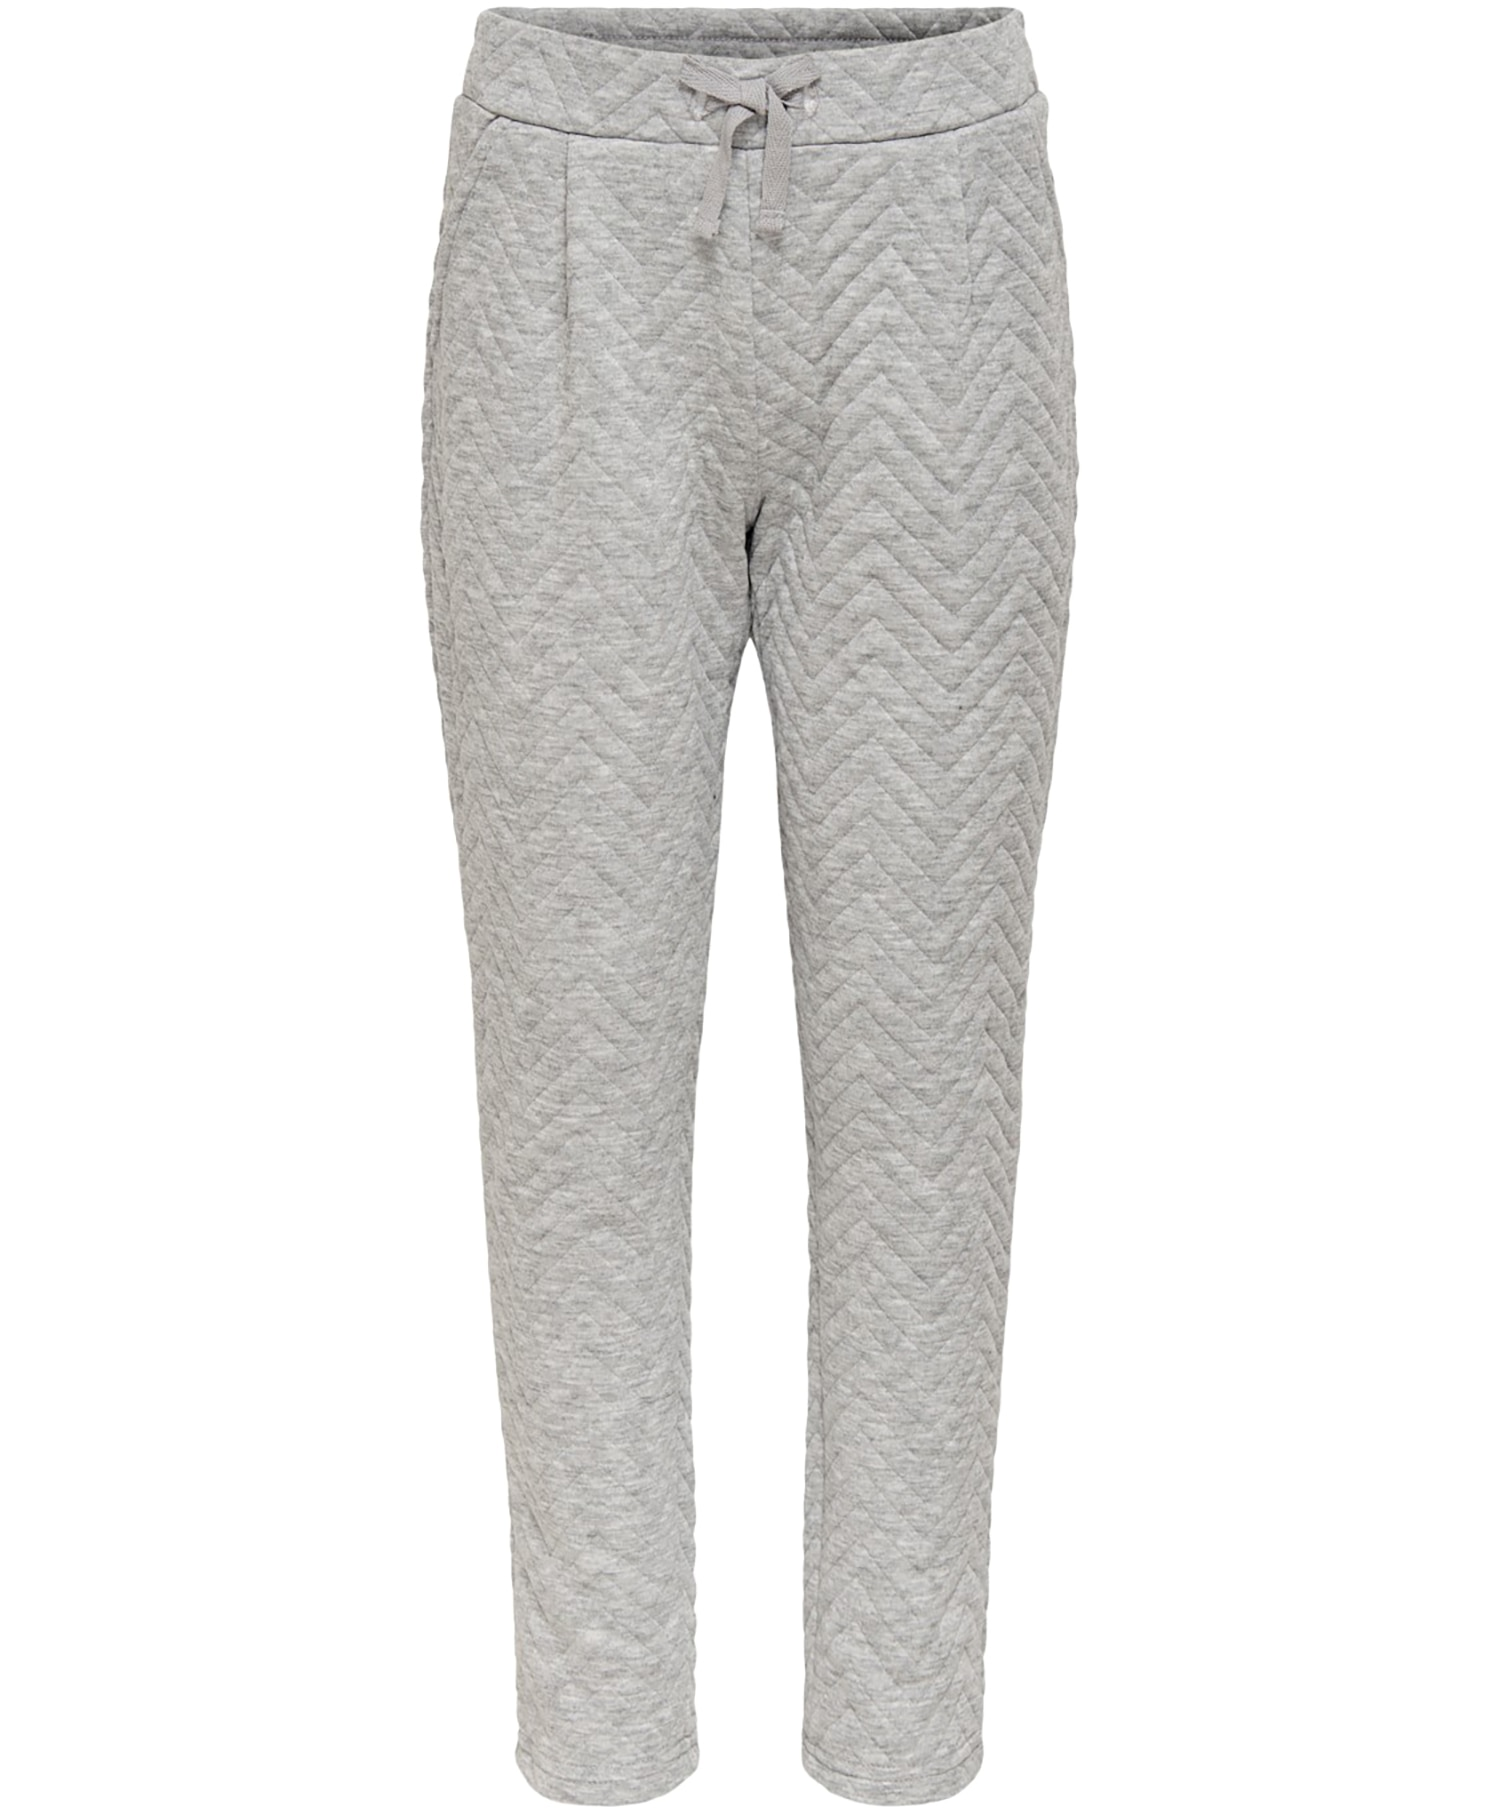 Only Kids Kimberly pant